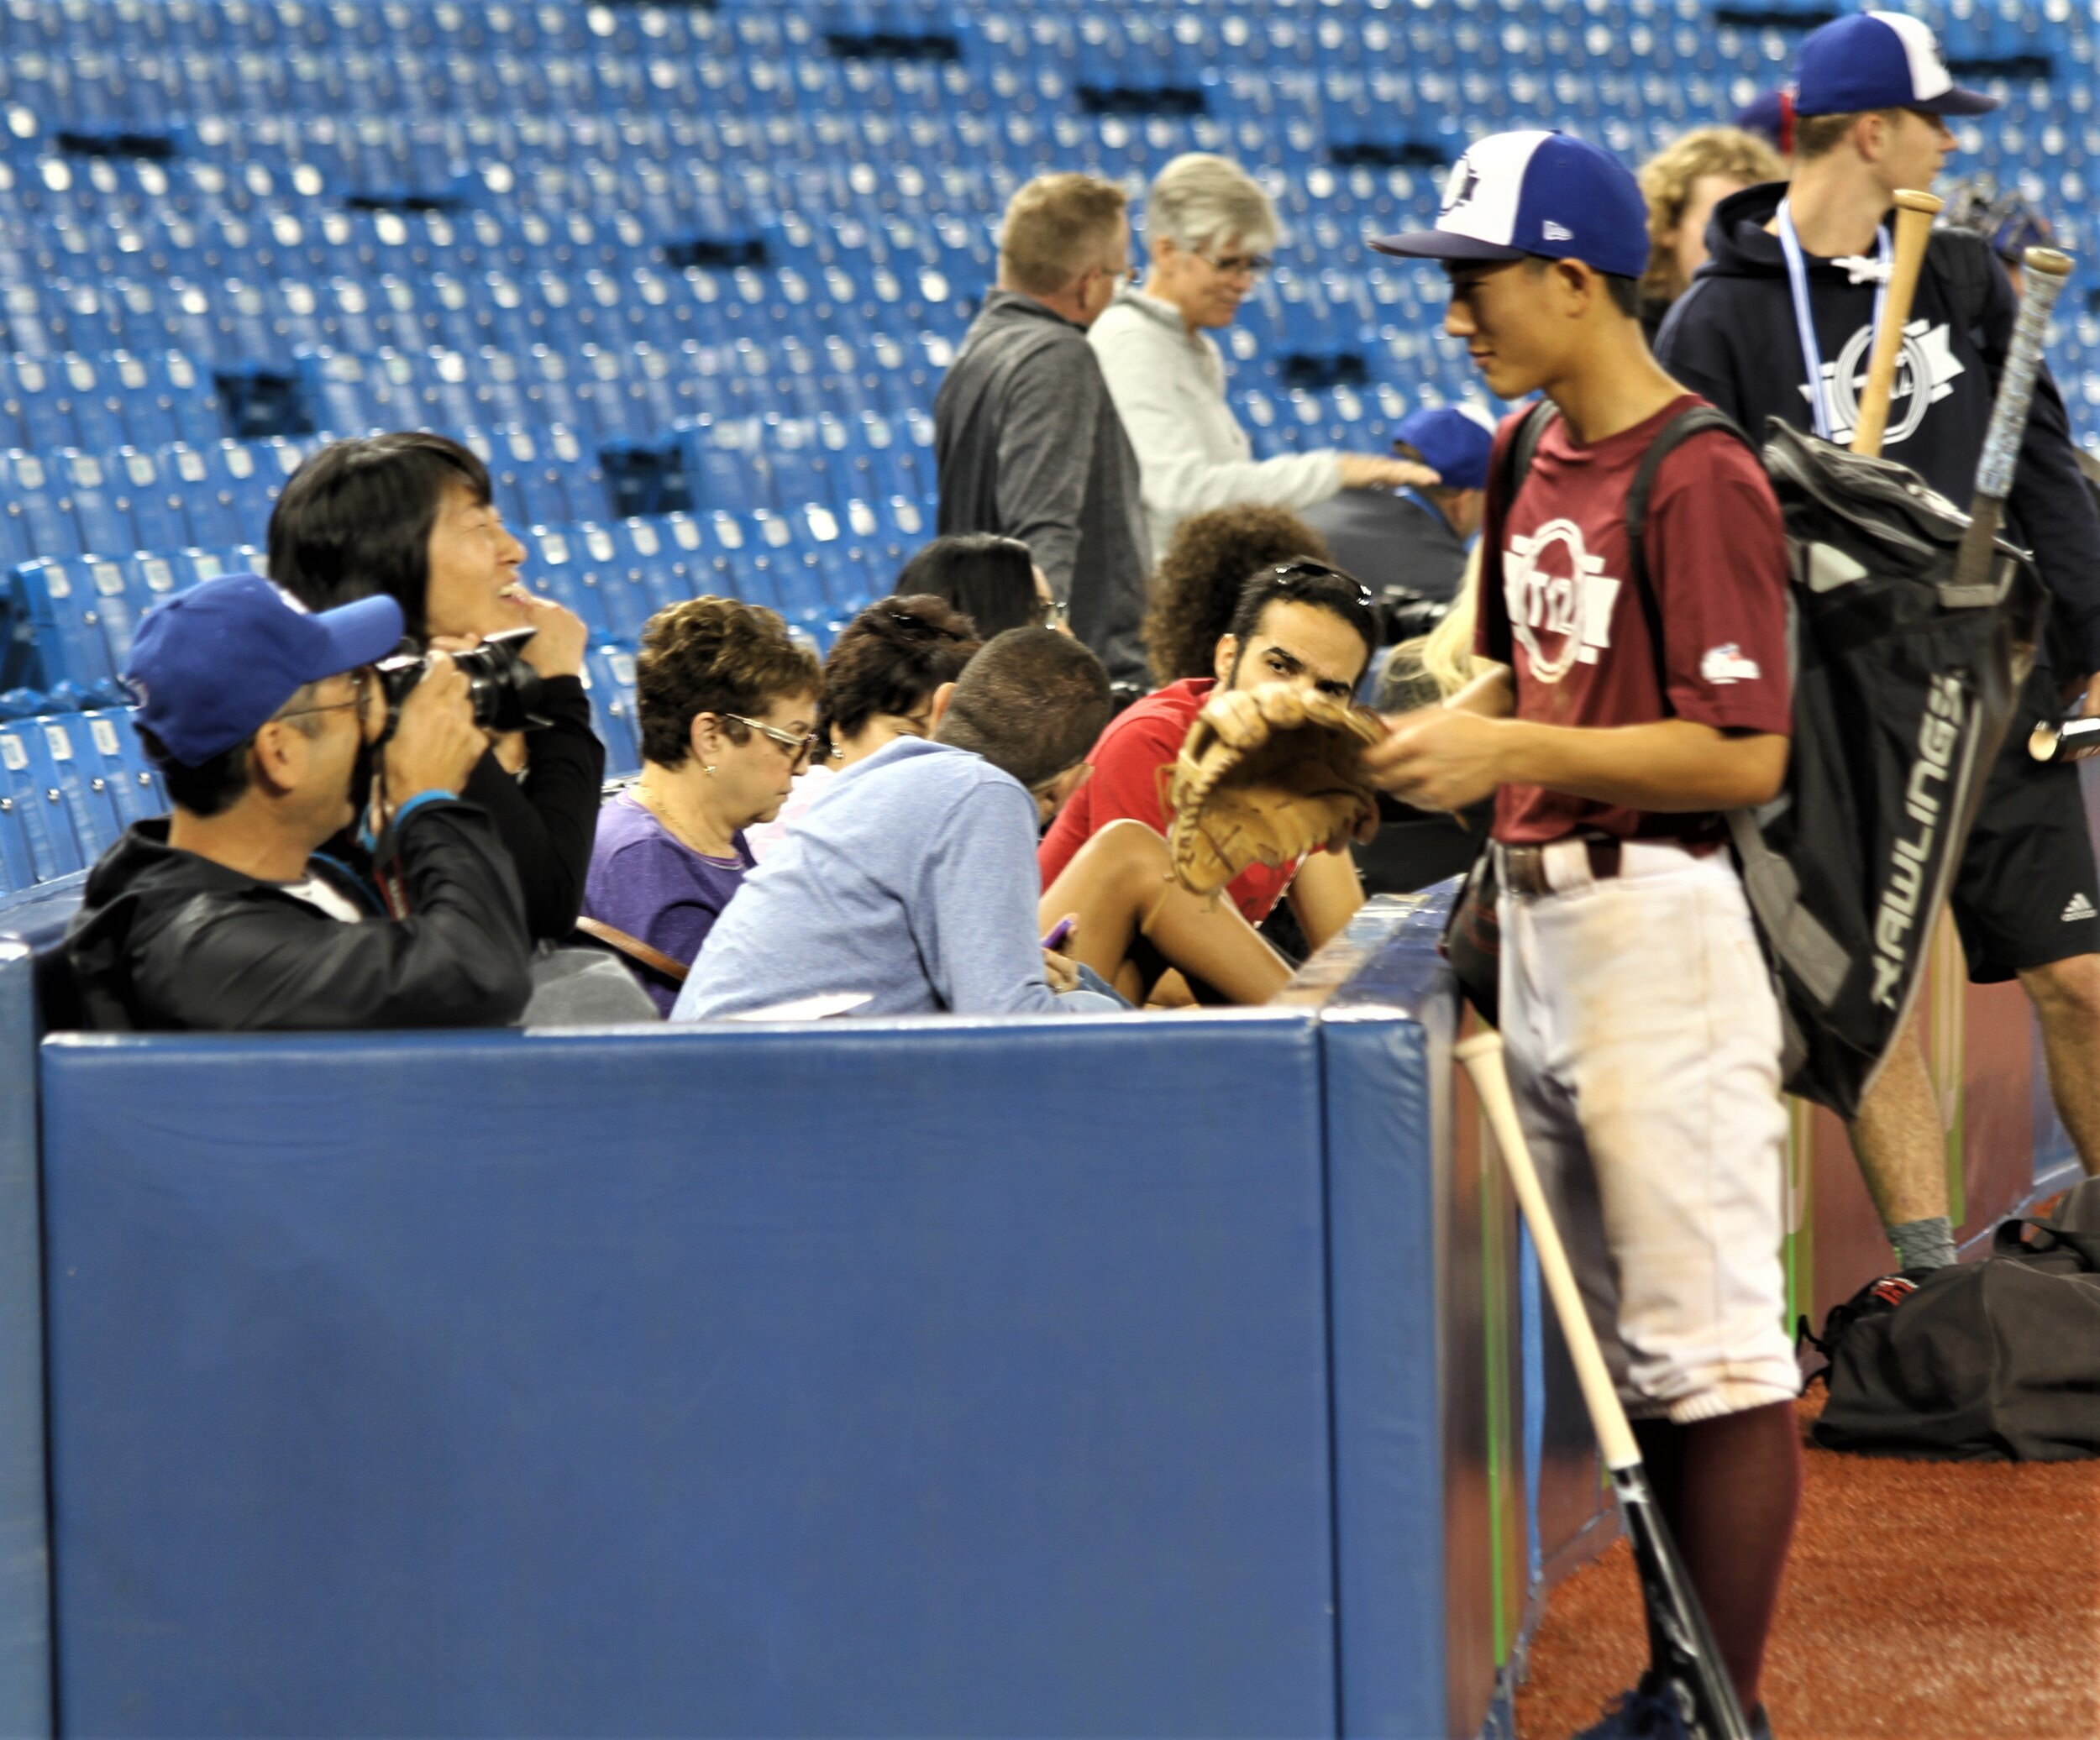 Proud parents Yukihiro and Yukiko Fujie greeted their son, Yosuke Fujie (Mission, BC), after Team Maroon beat Team Black 5-1 on Friday at Tournament 12 at Rogers Centre. Yukihiro plays with the Fraser Valley Cardinals. Photo: J.P. Antonacci